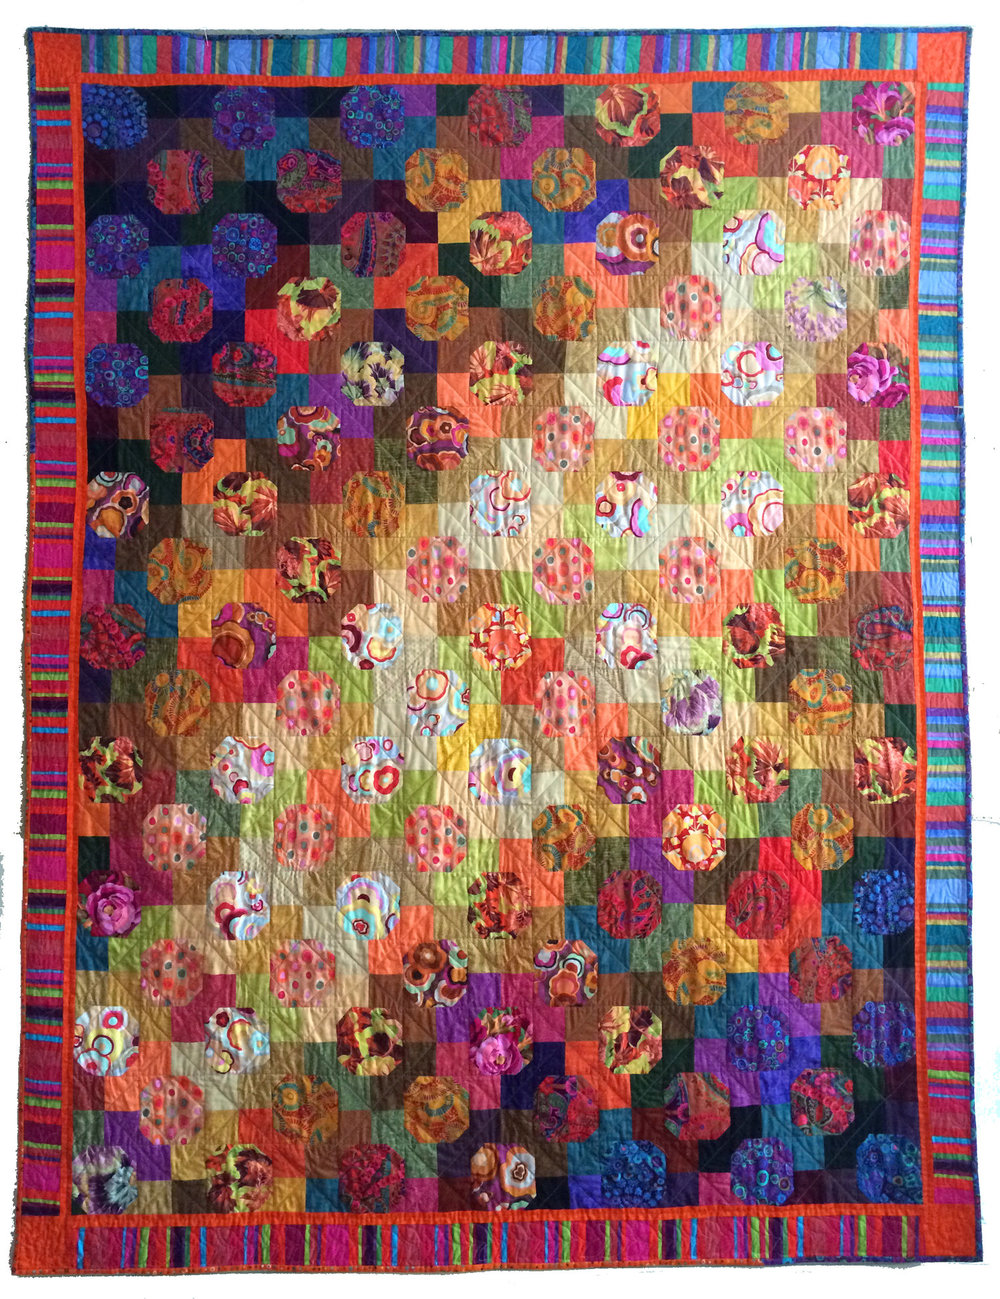 Created by Valerie K Turer. 56 in. x 76 in. Raffled at our January 2017 meeting.